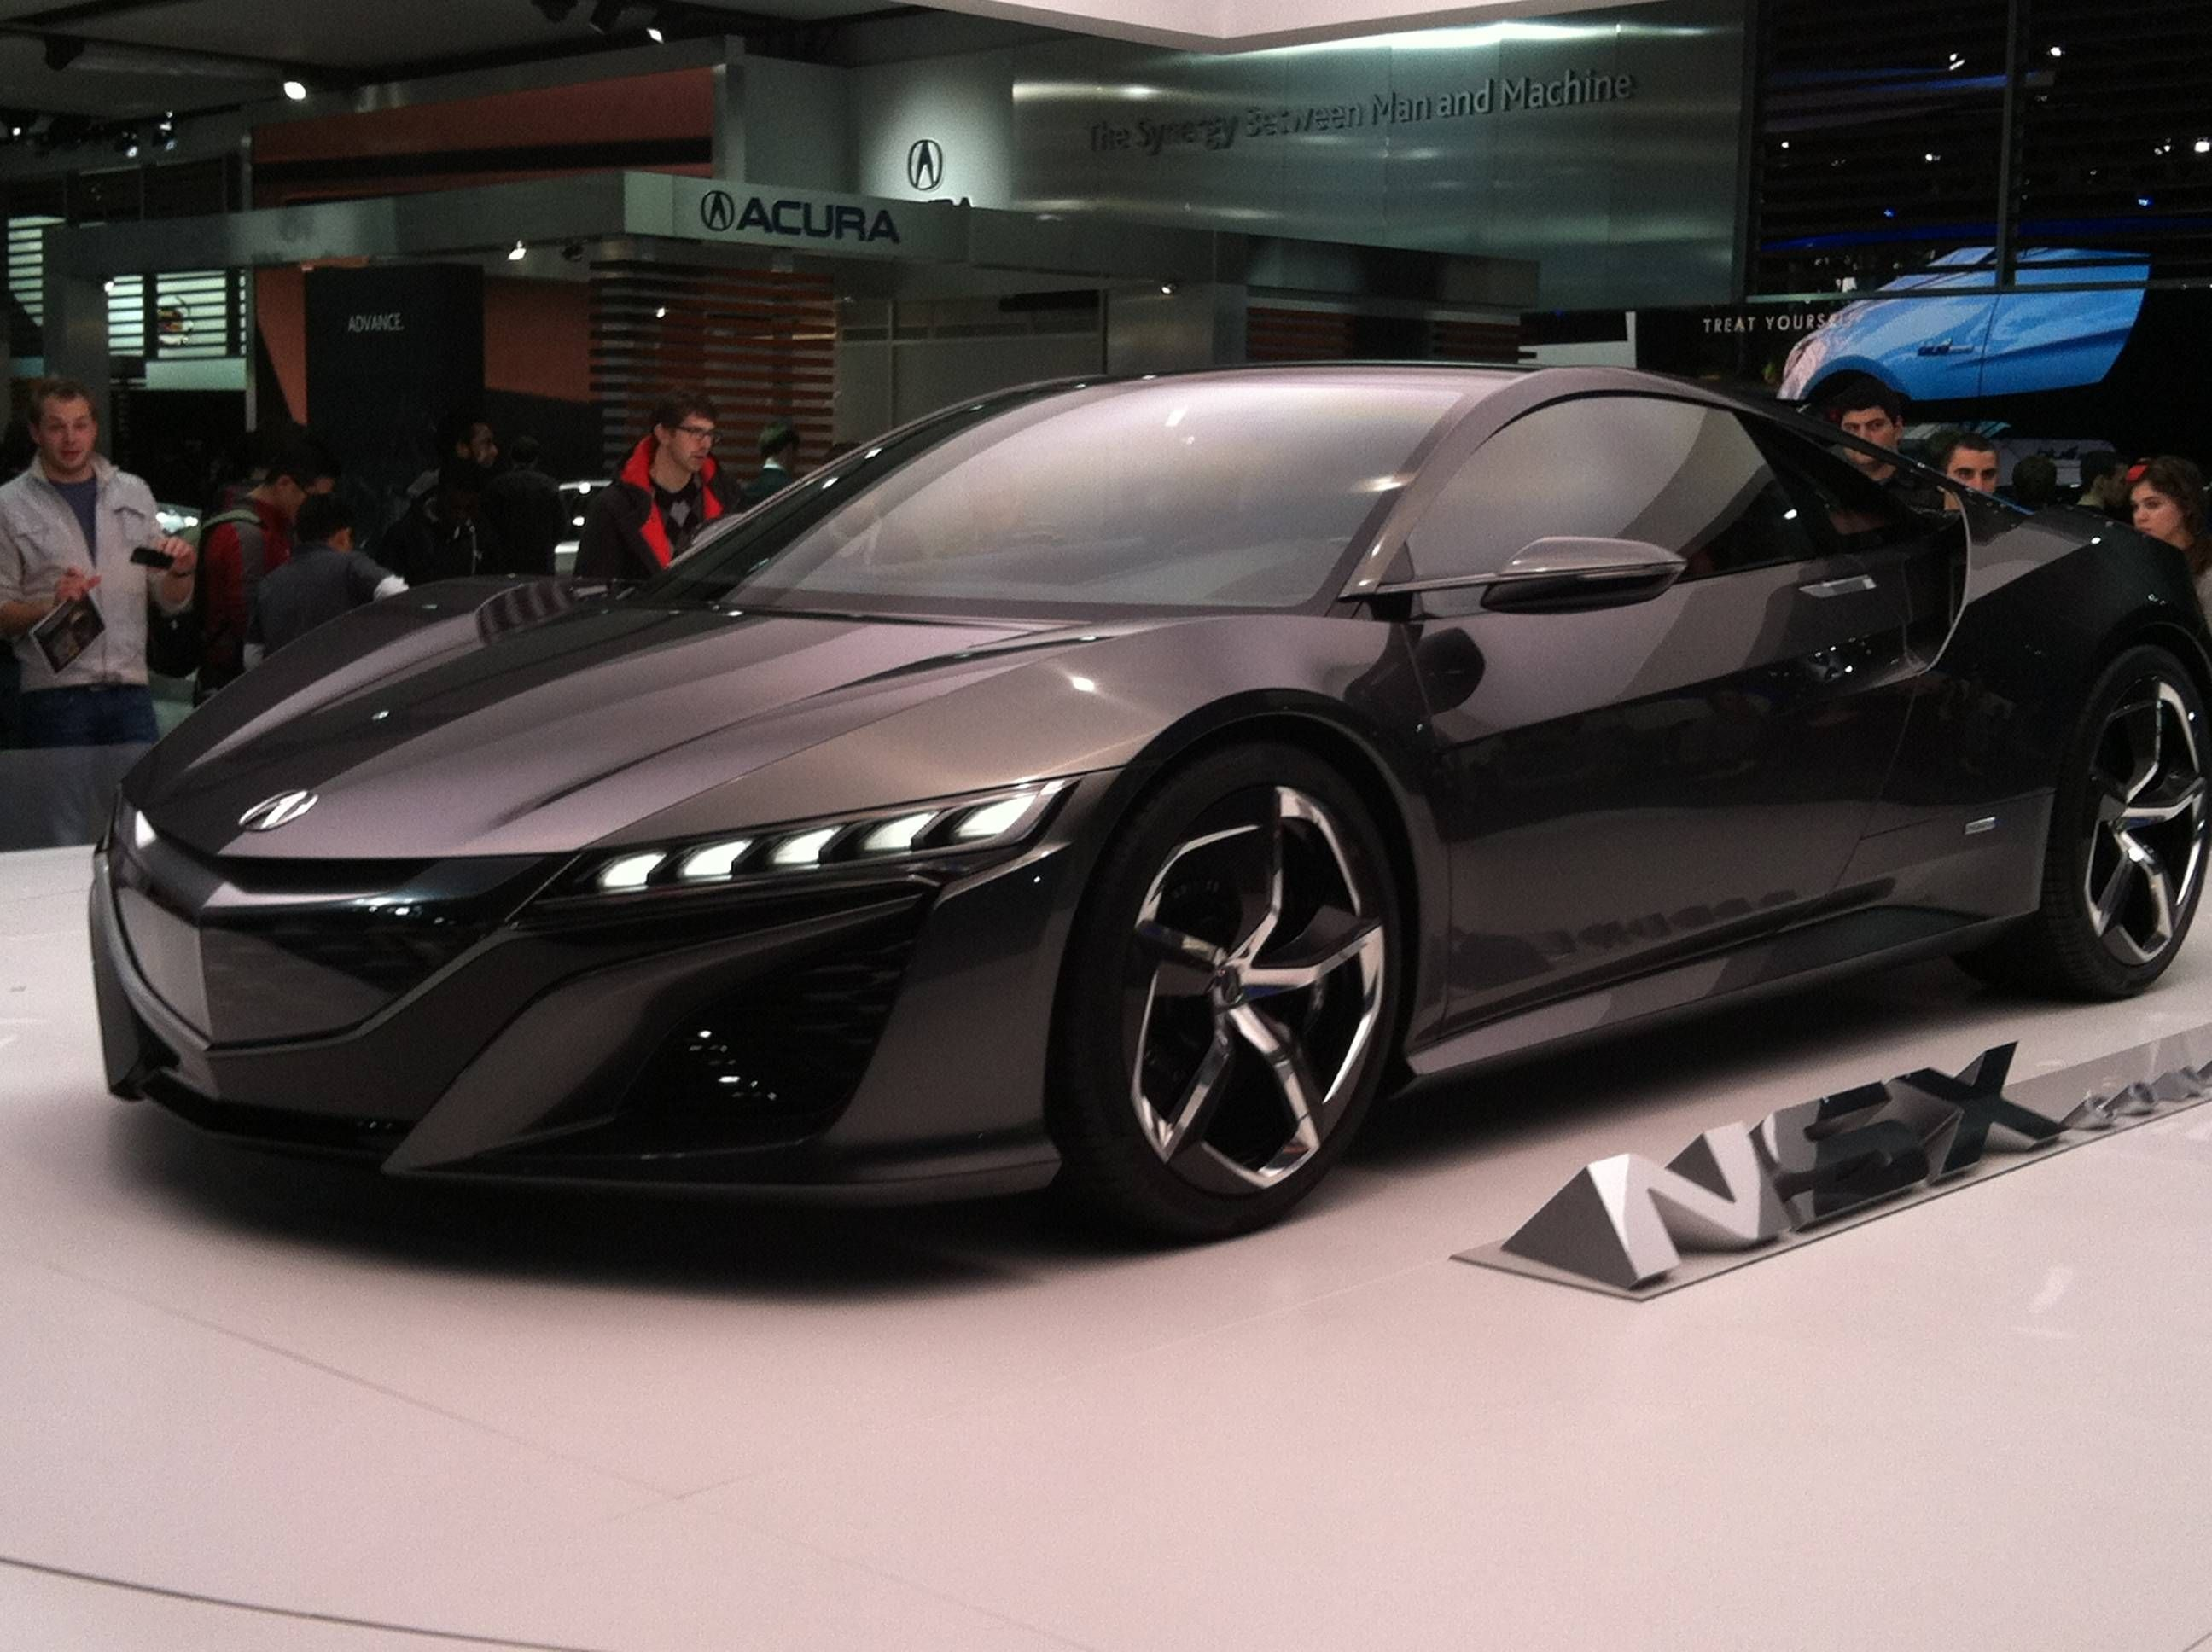 new car release for 20152013 Acura NSX Concept for 2015 release  Cars  Pinterest